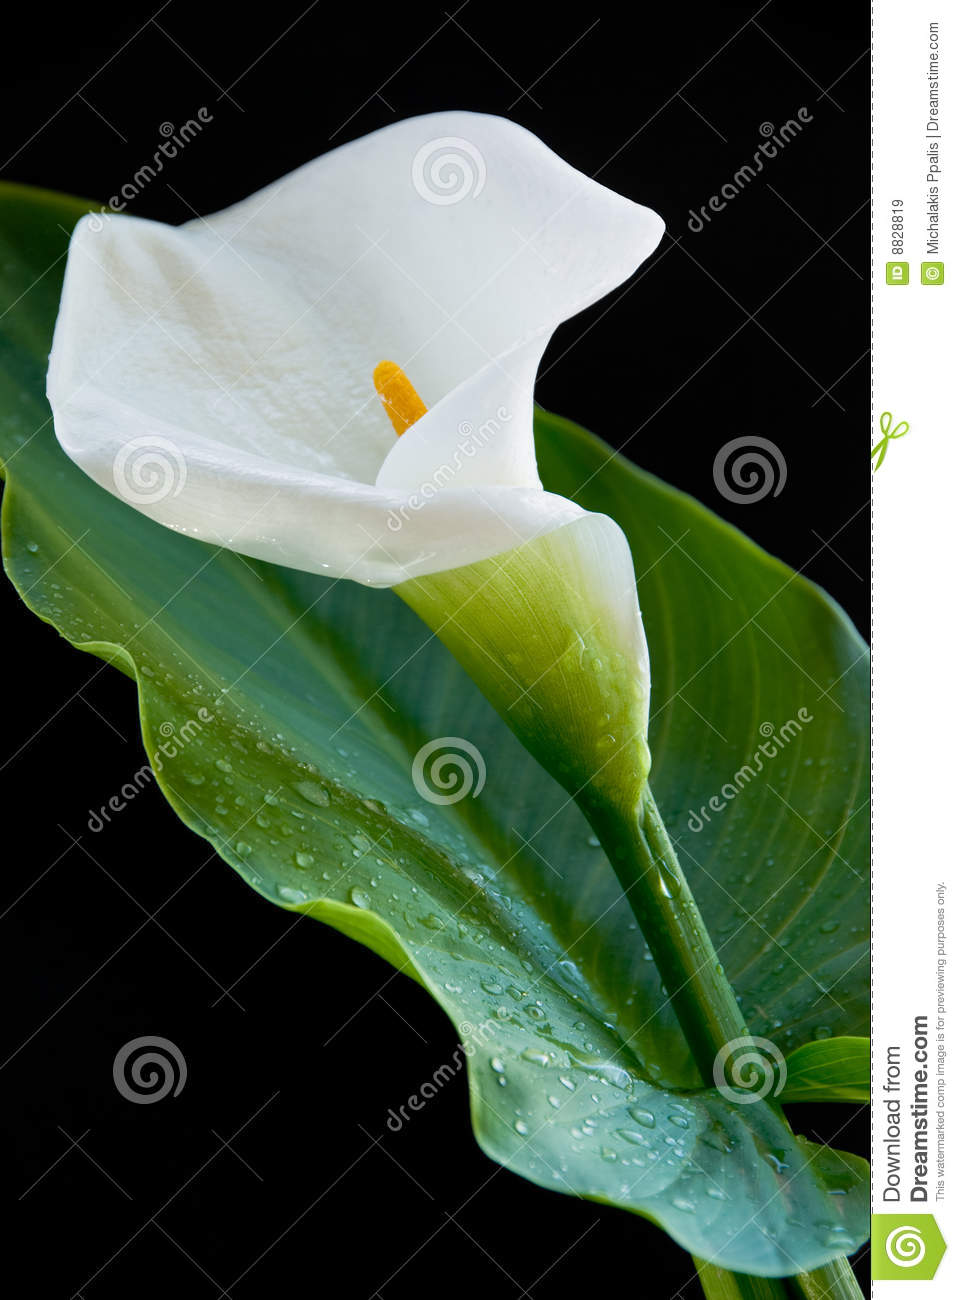 Calla lily flower stock image image of arum leaf plant 8828819 calla lily flower izmirmasajfo